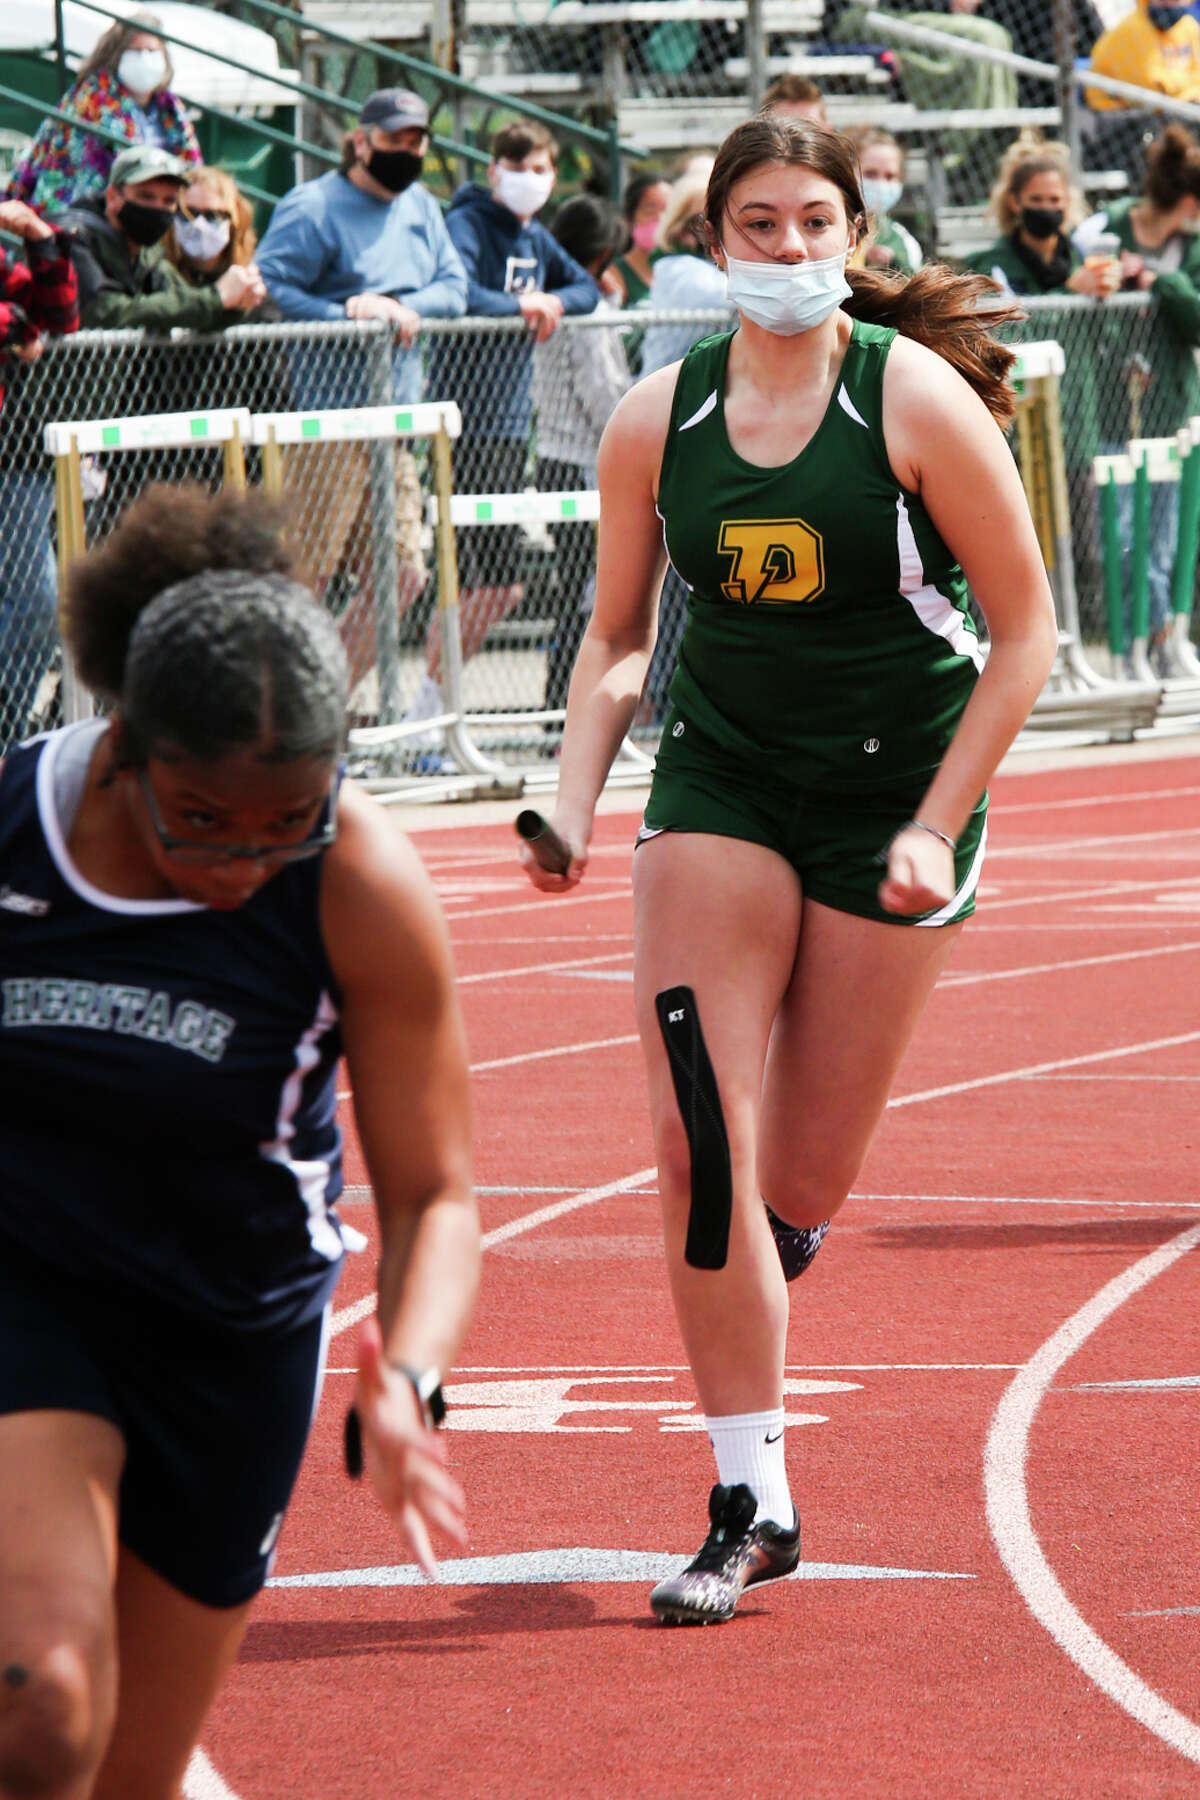 Dow's Emilee Bonter competes in a relay during the Graves/Swayze Relays Saturday, May 1, 2021 at H. H. Dow High School. (Doug Julian/for the Daily News)